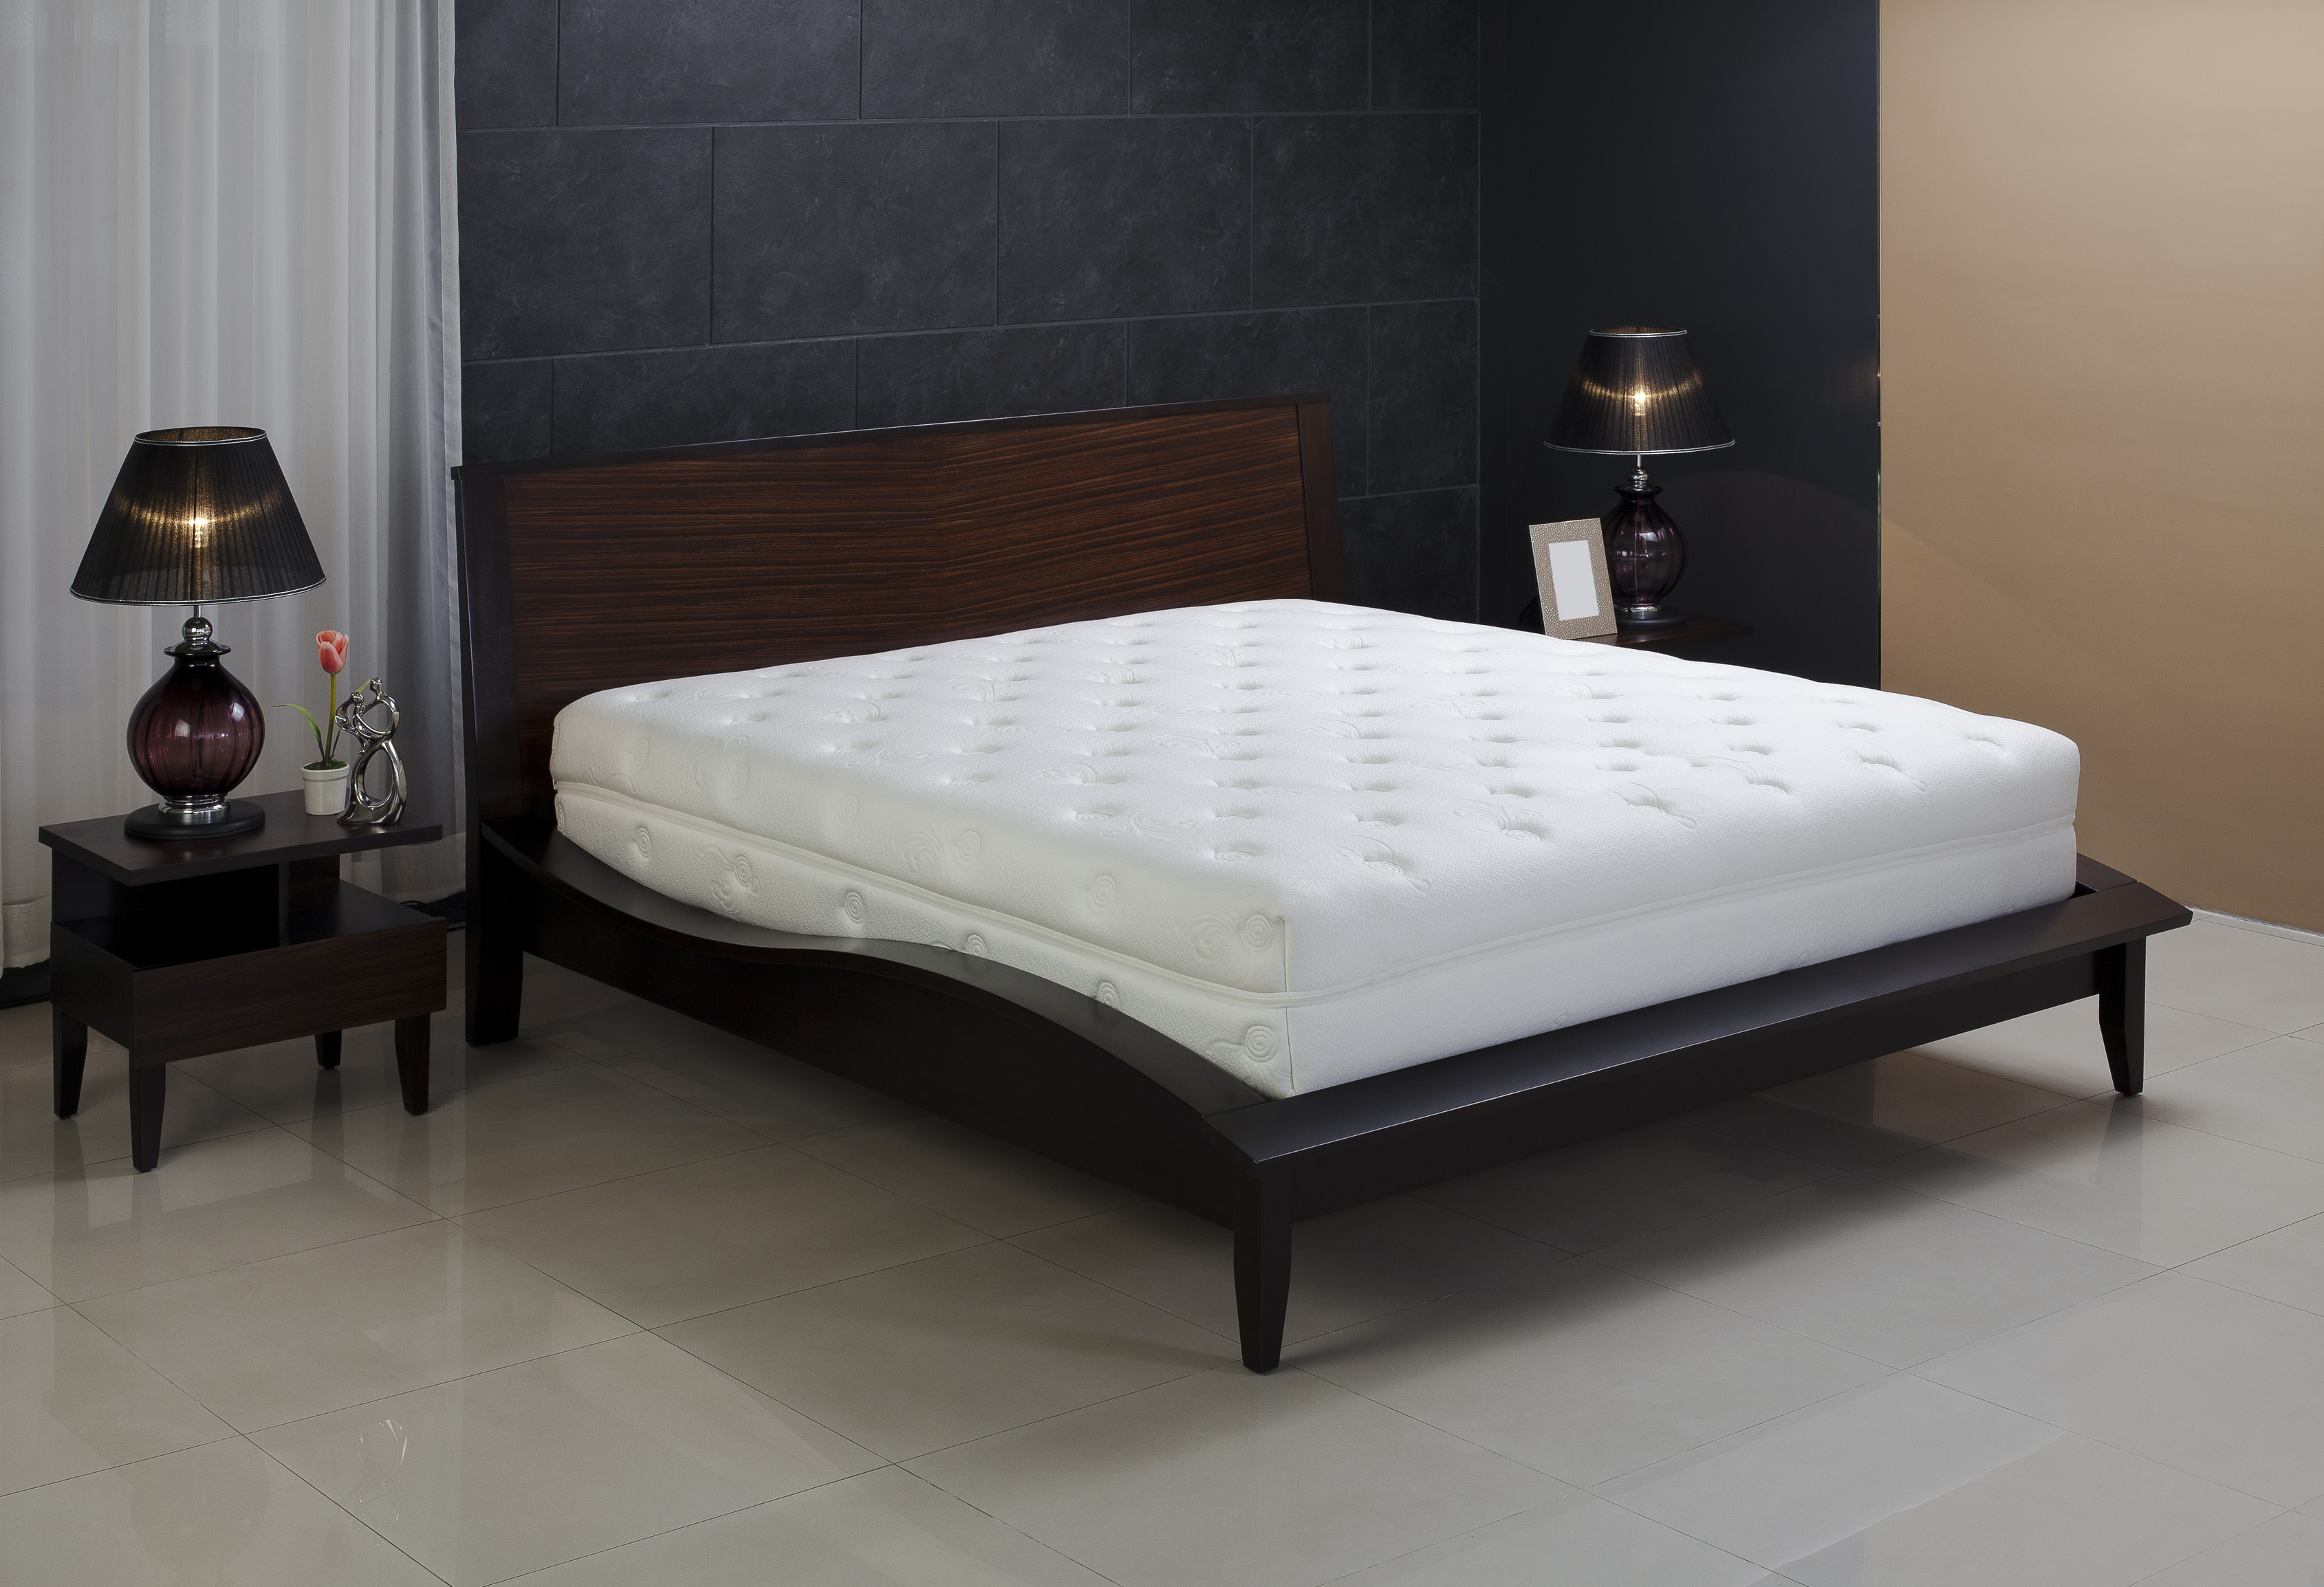 comment bien choisir son matelas blog matelpro. Black Bedroom Furniture Sets. Home Design Ideas